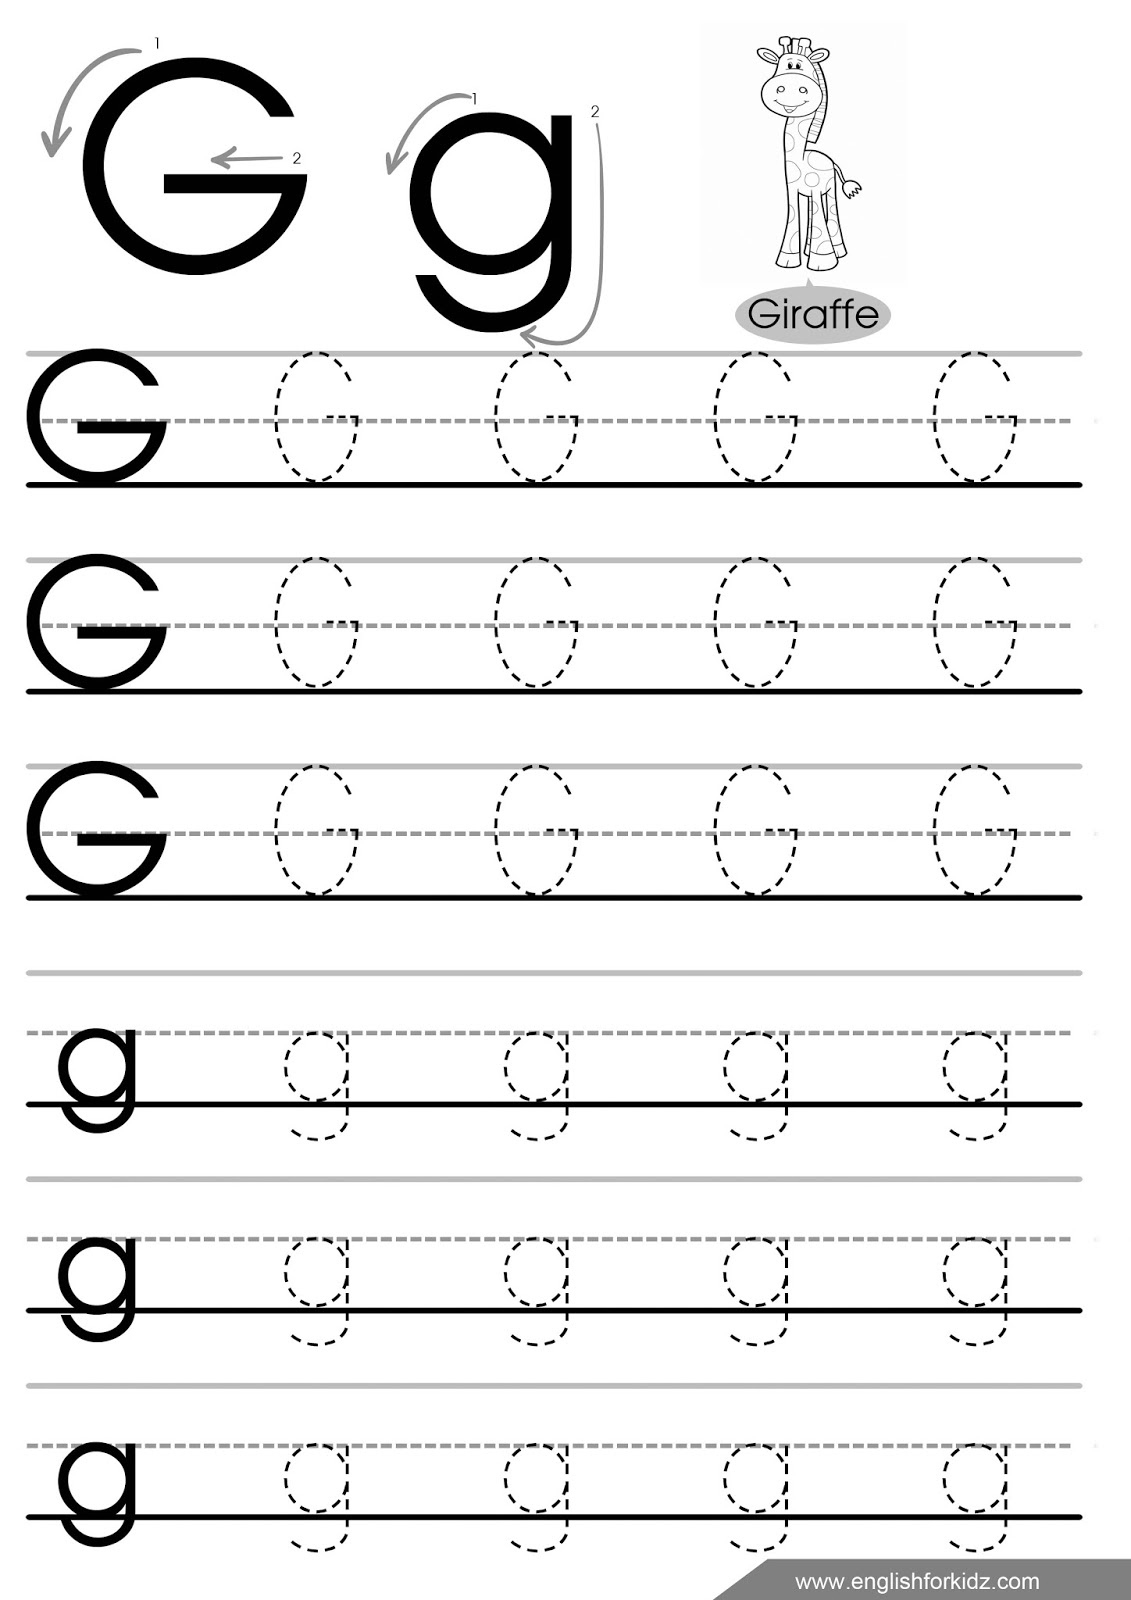 Letter Tracing Worksheets (Letters A - J) intended for Letter G Tracing Preschool